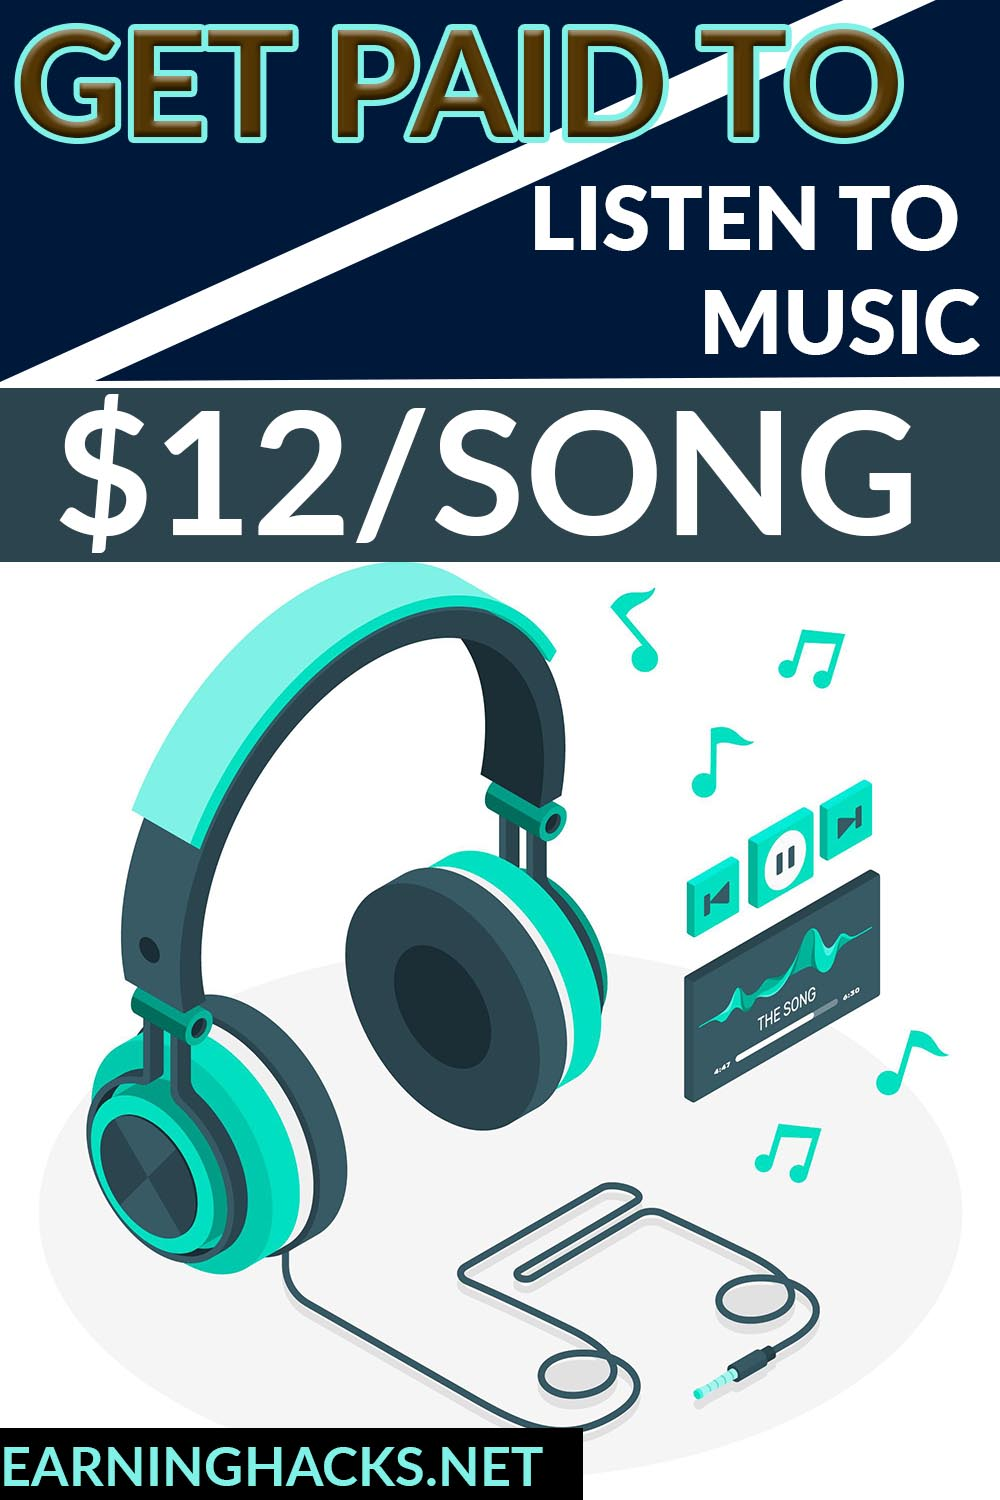 Get Paid to listen to music $12/song.